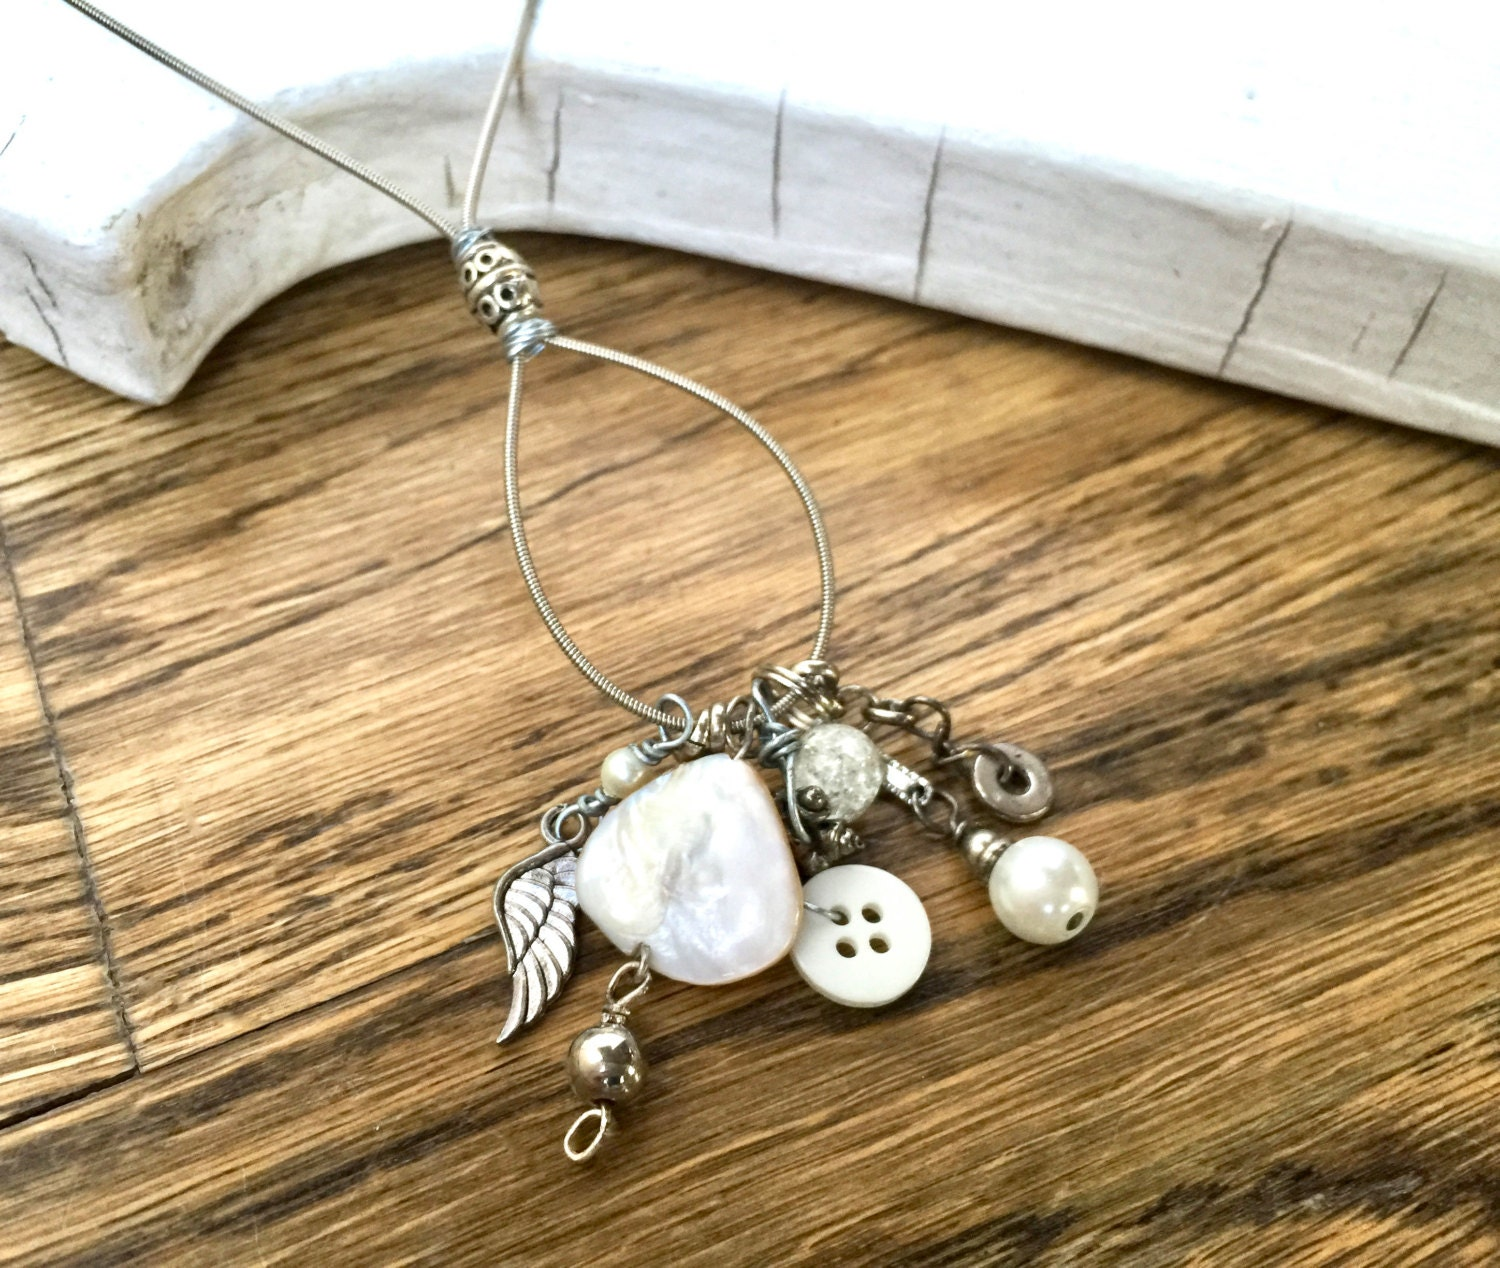 charm necklace guitar string necklace silver with pearls etsy. Black Bedroom Furniture Sets. Home Design Ideas